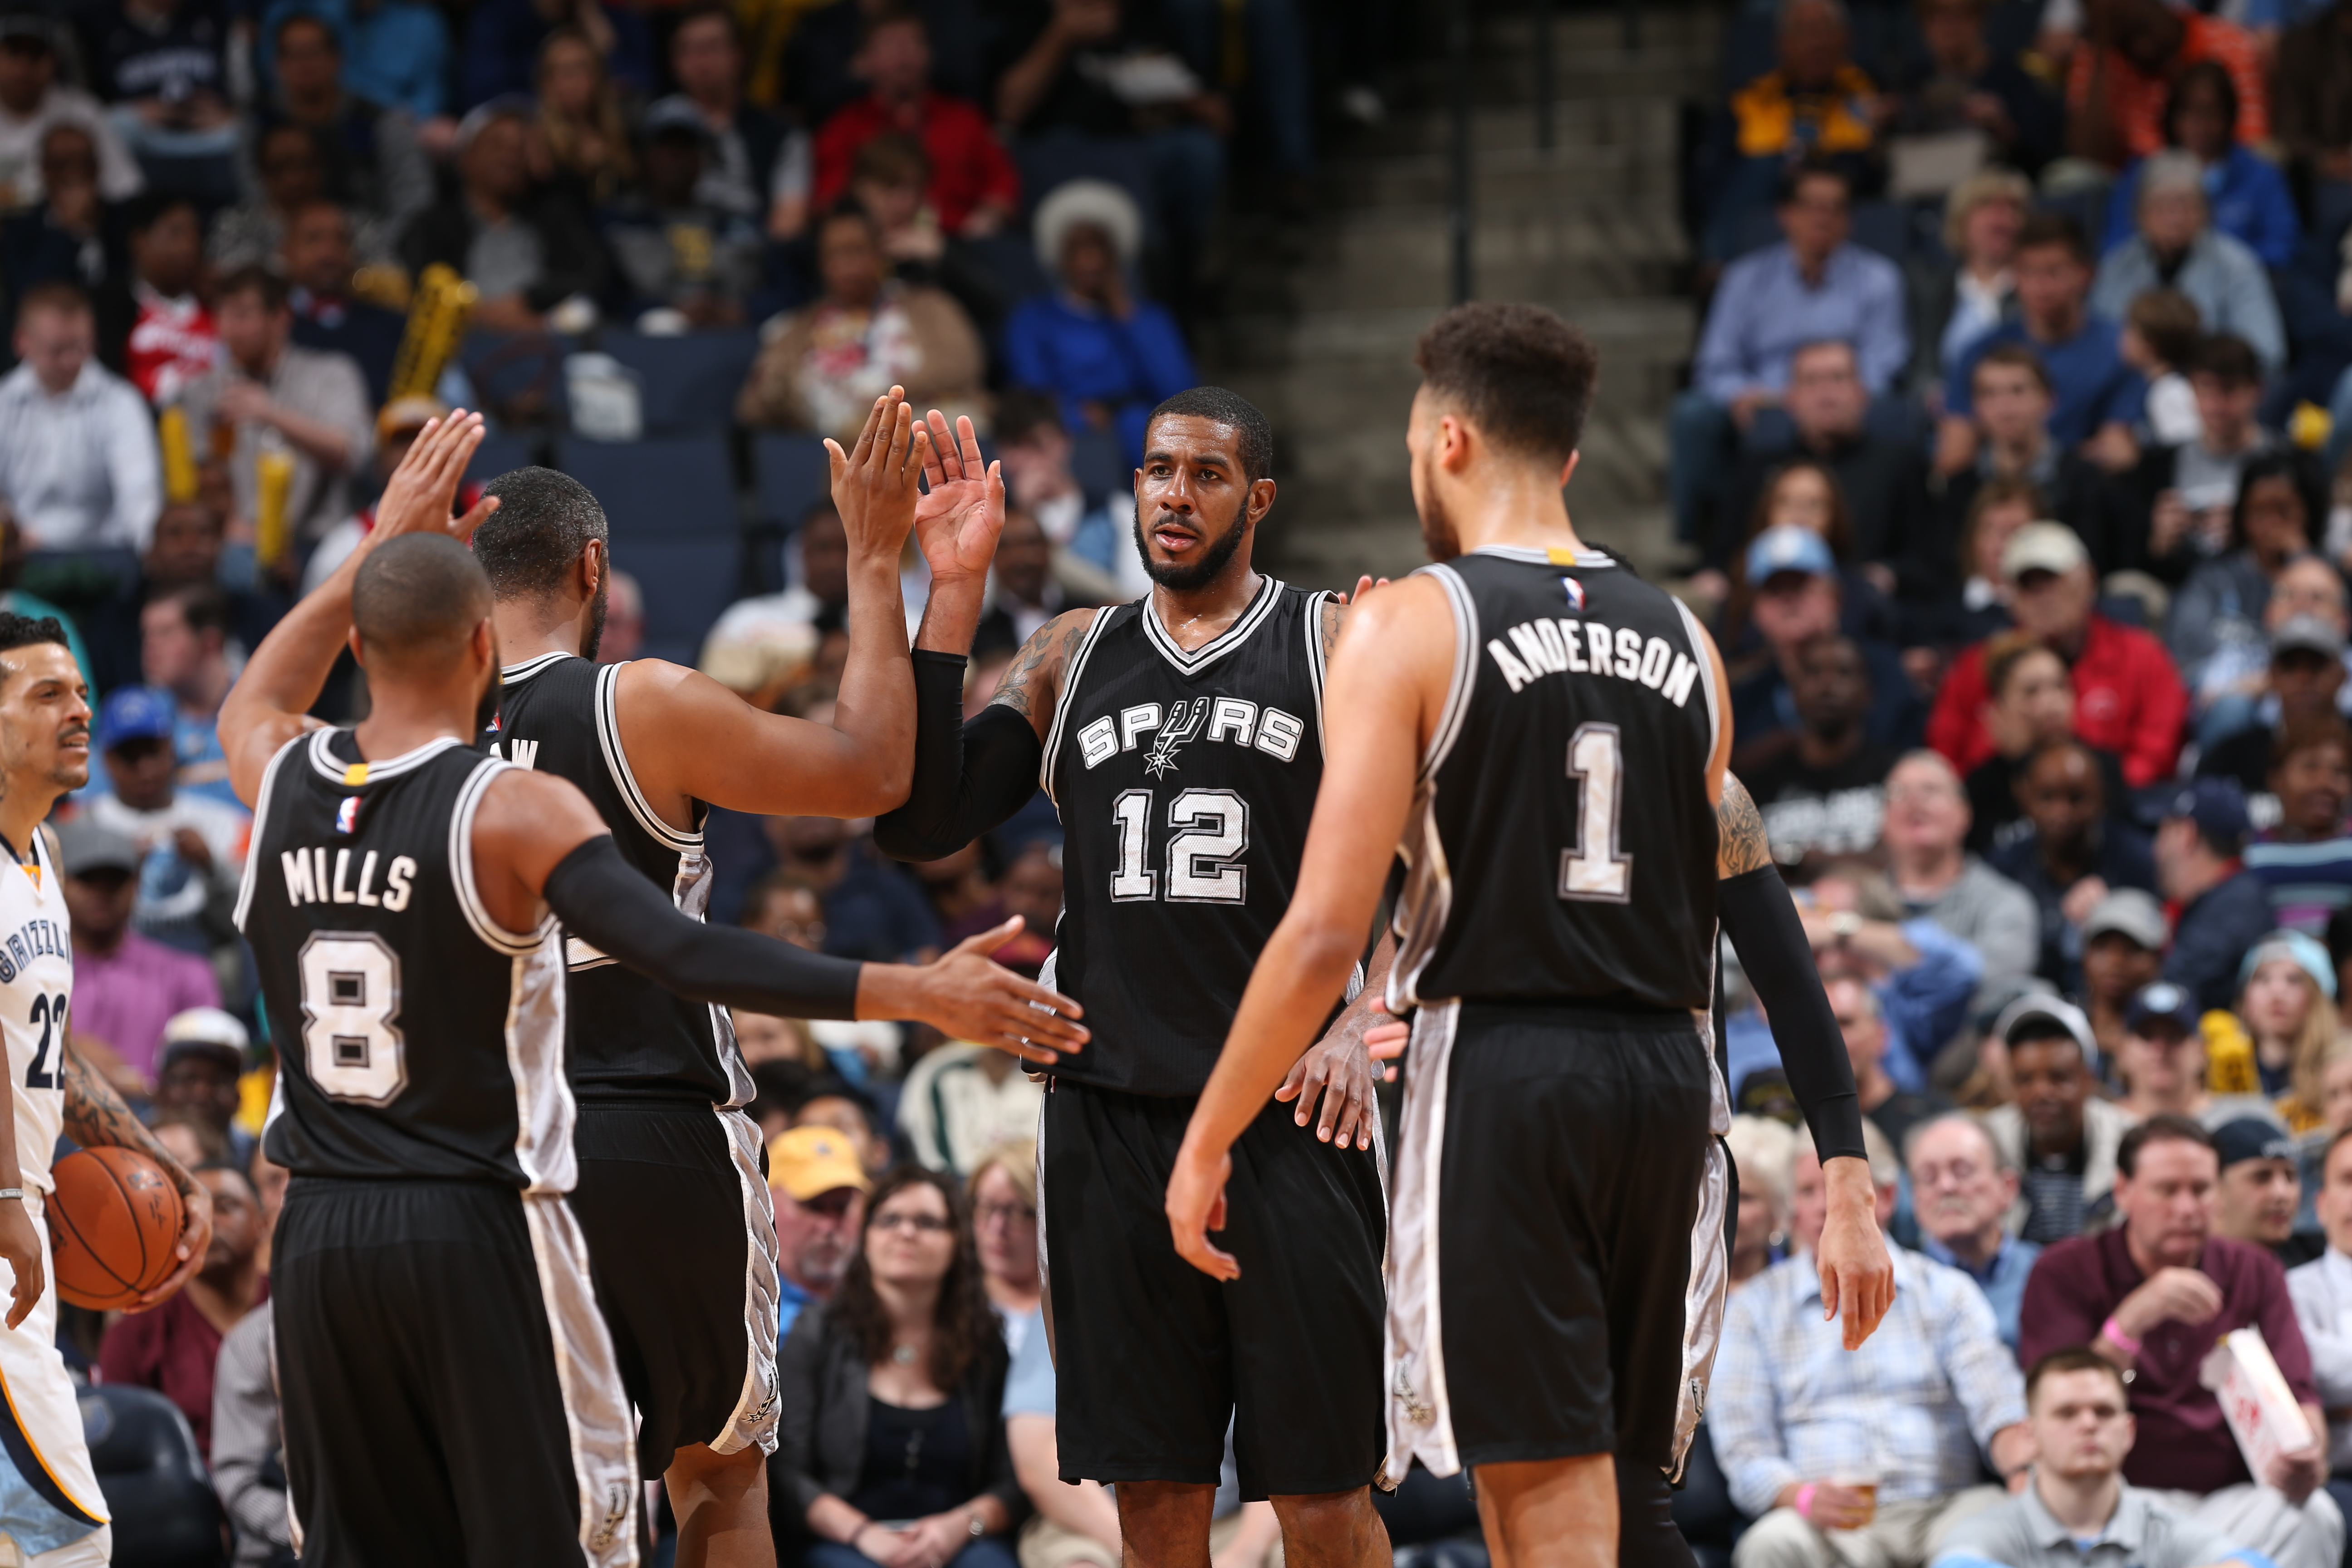 MEMPHIS, TN - MARCH 28:  LaMarcus Aldridge #12 of the San Antonio Spurs shakes hands with his teammates during the game against the Memphis Grizzlies on March 28, 2016 at FedExForum in Memphis, Tennessee. (Photo by Joe Murphy/NBAE via Getty Images)